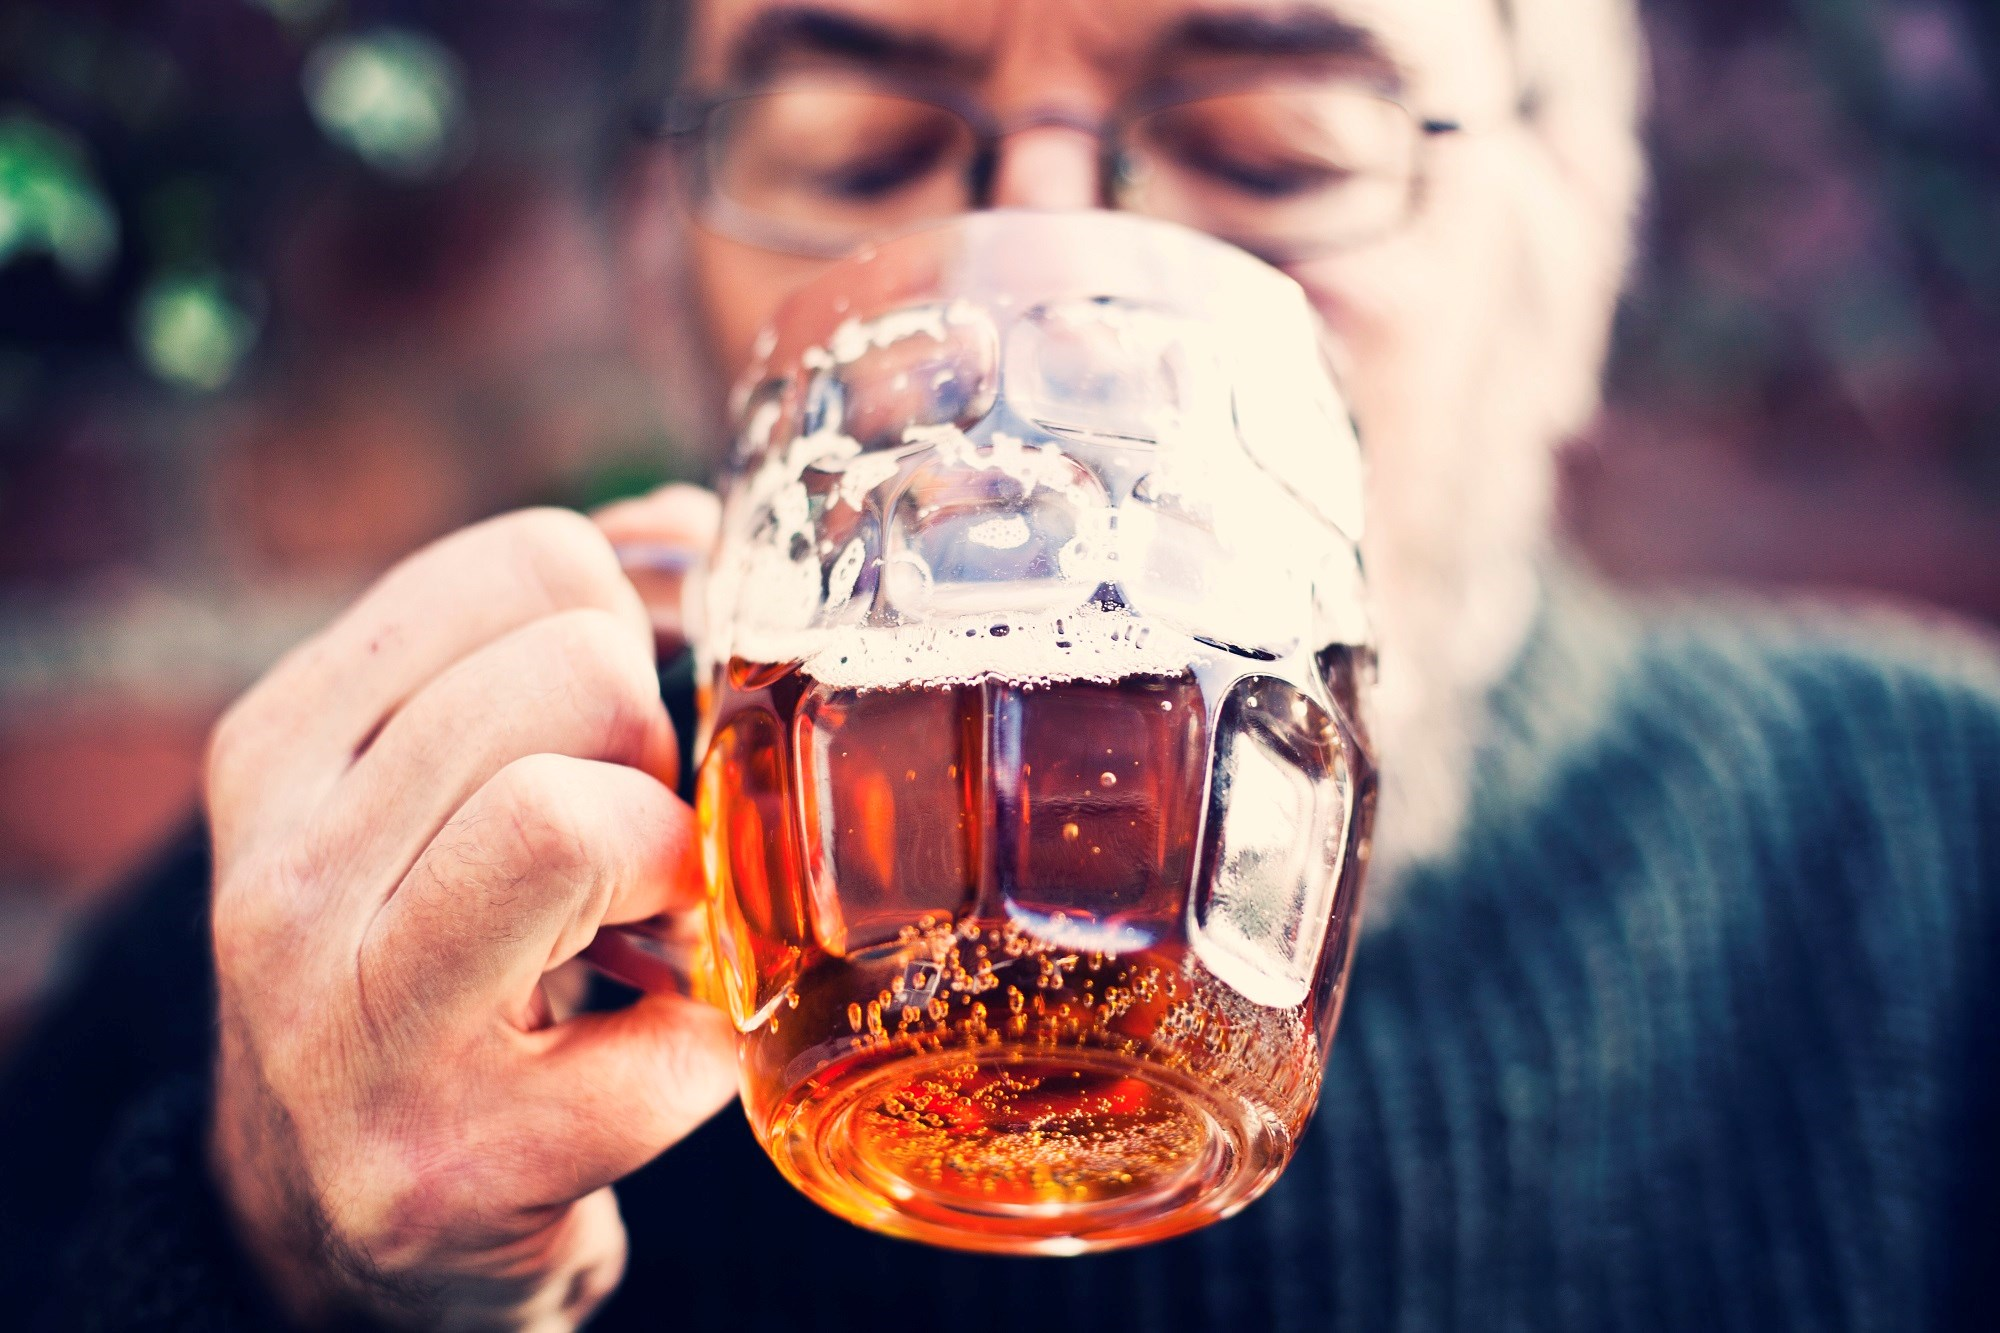 The incidence of substance disorders related to alcohol and other substances was increased for older men with an onset of bipolar disorder prior to age 60.